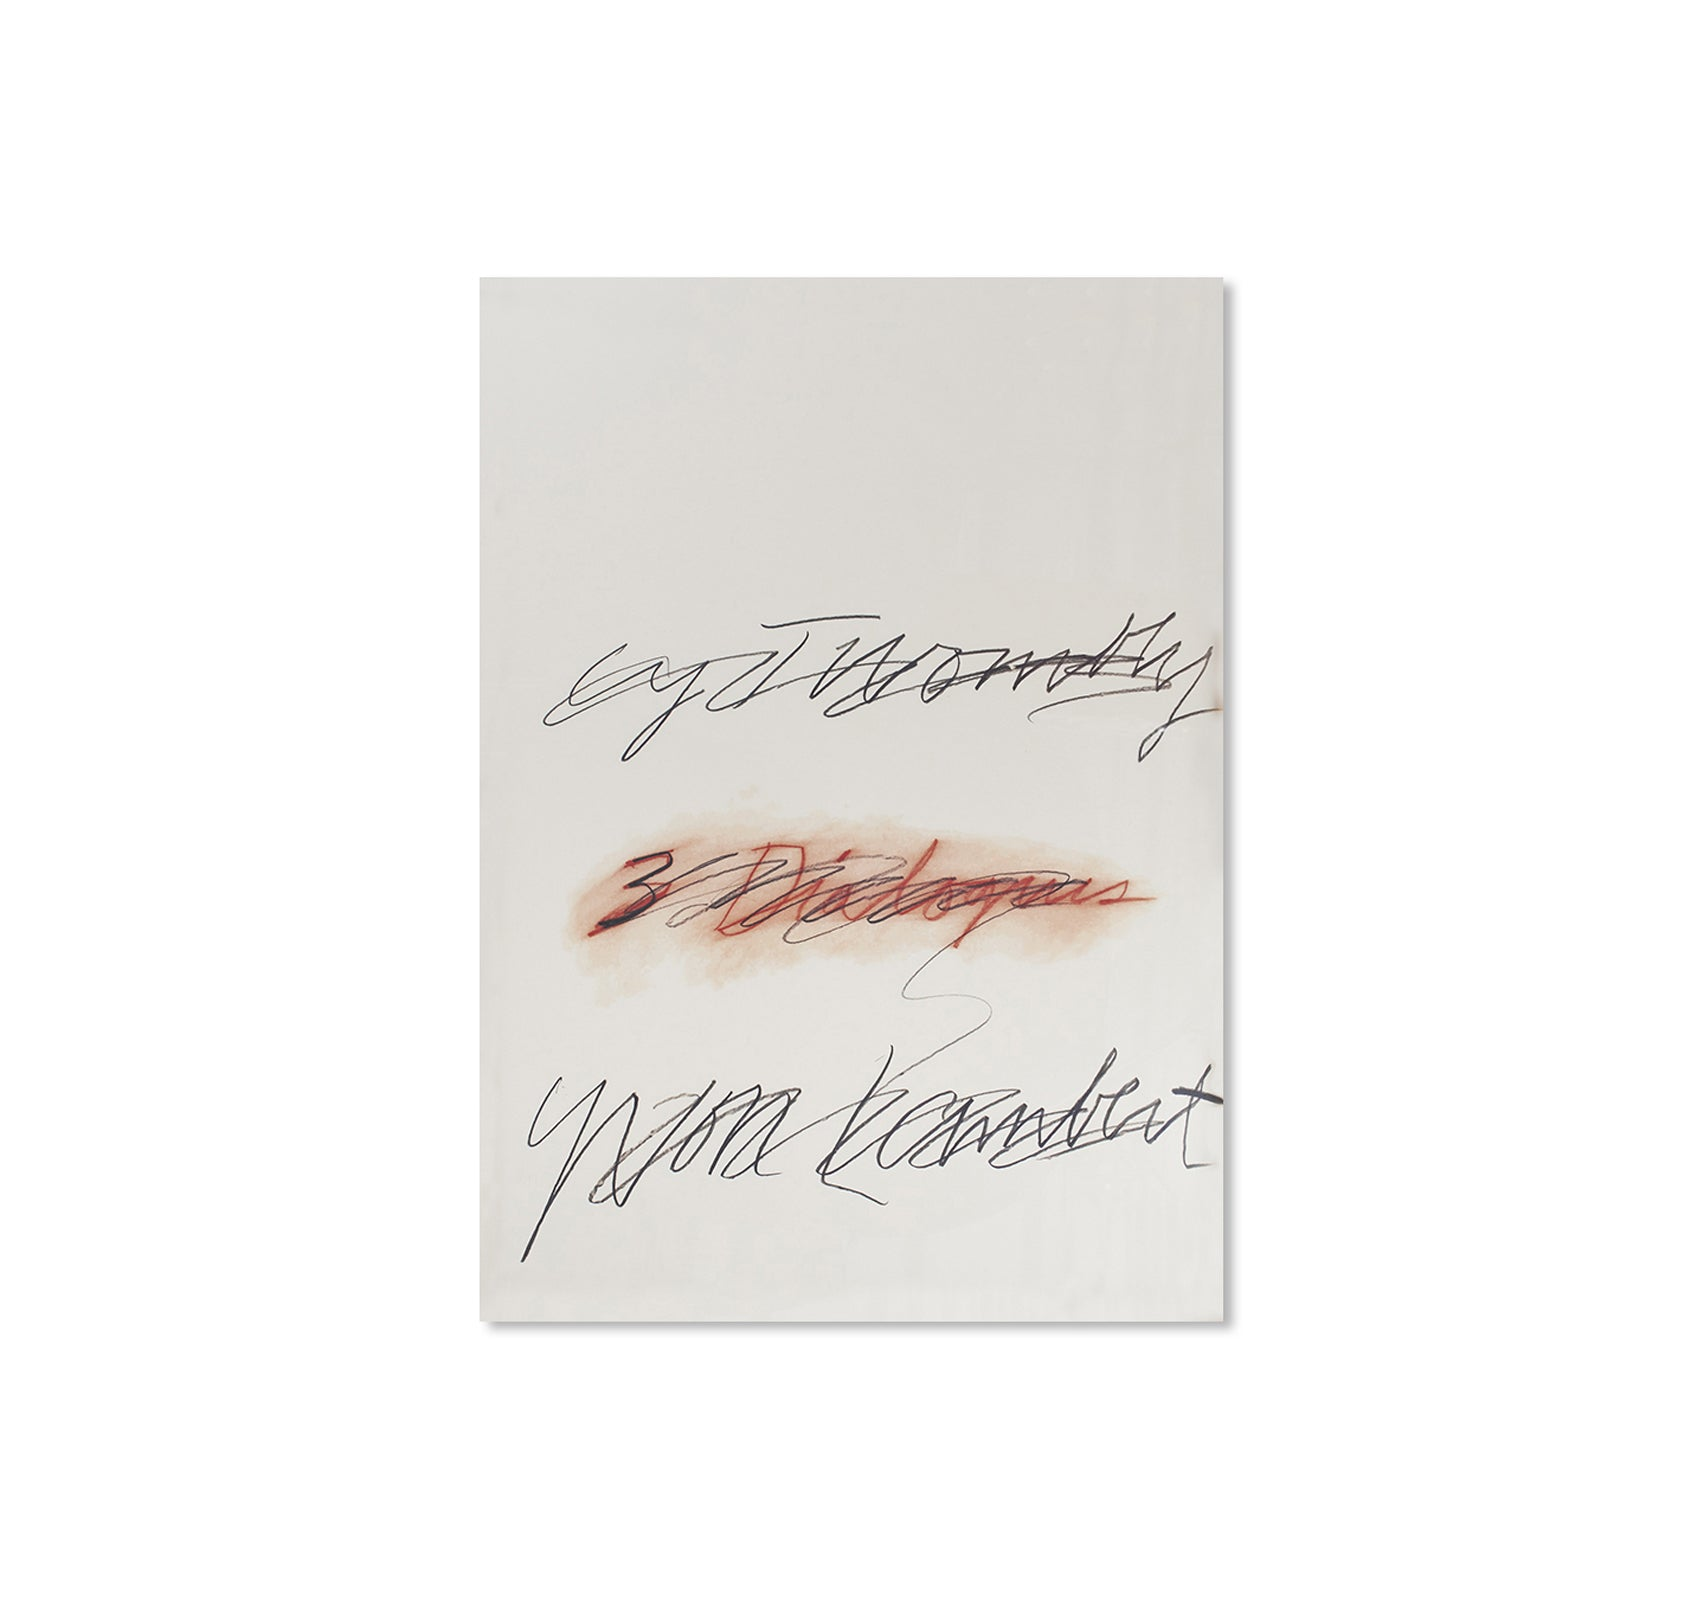 THREE DIALOGUES.2 PRINT (1977) by Cy Twombly